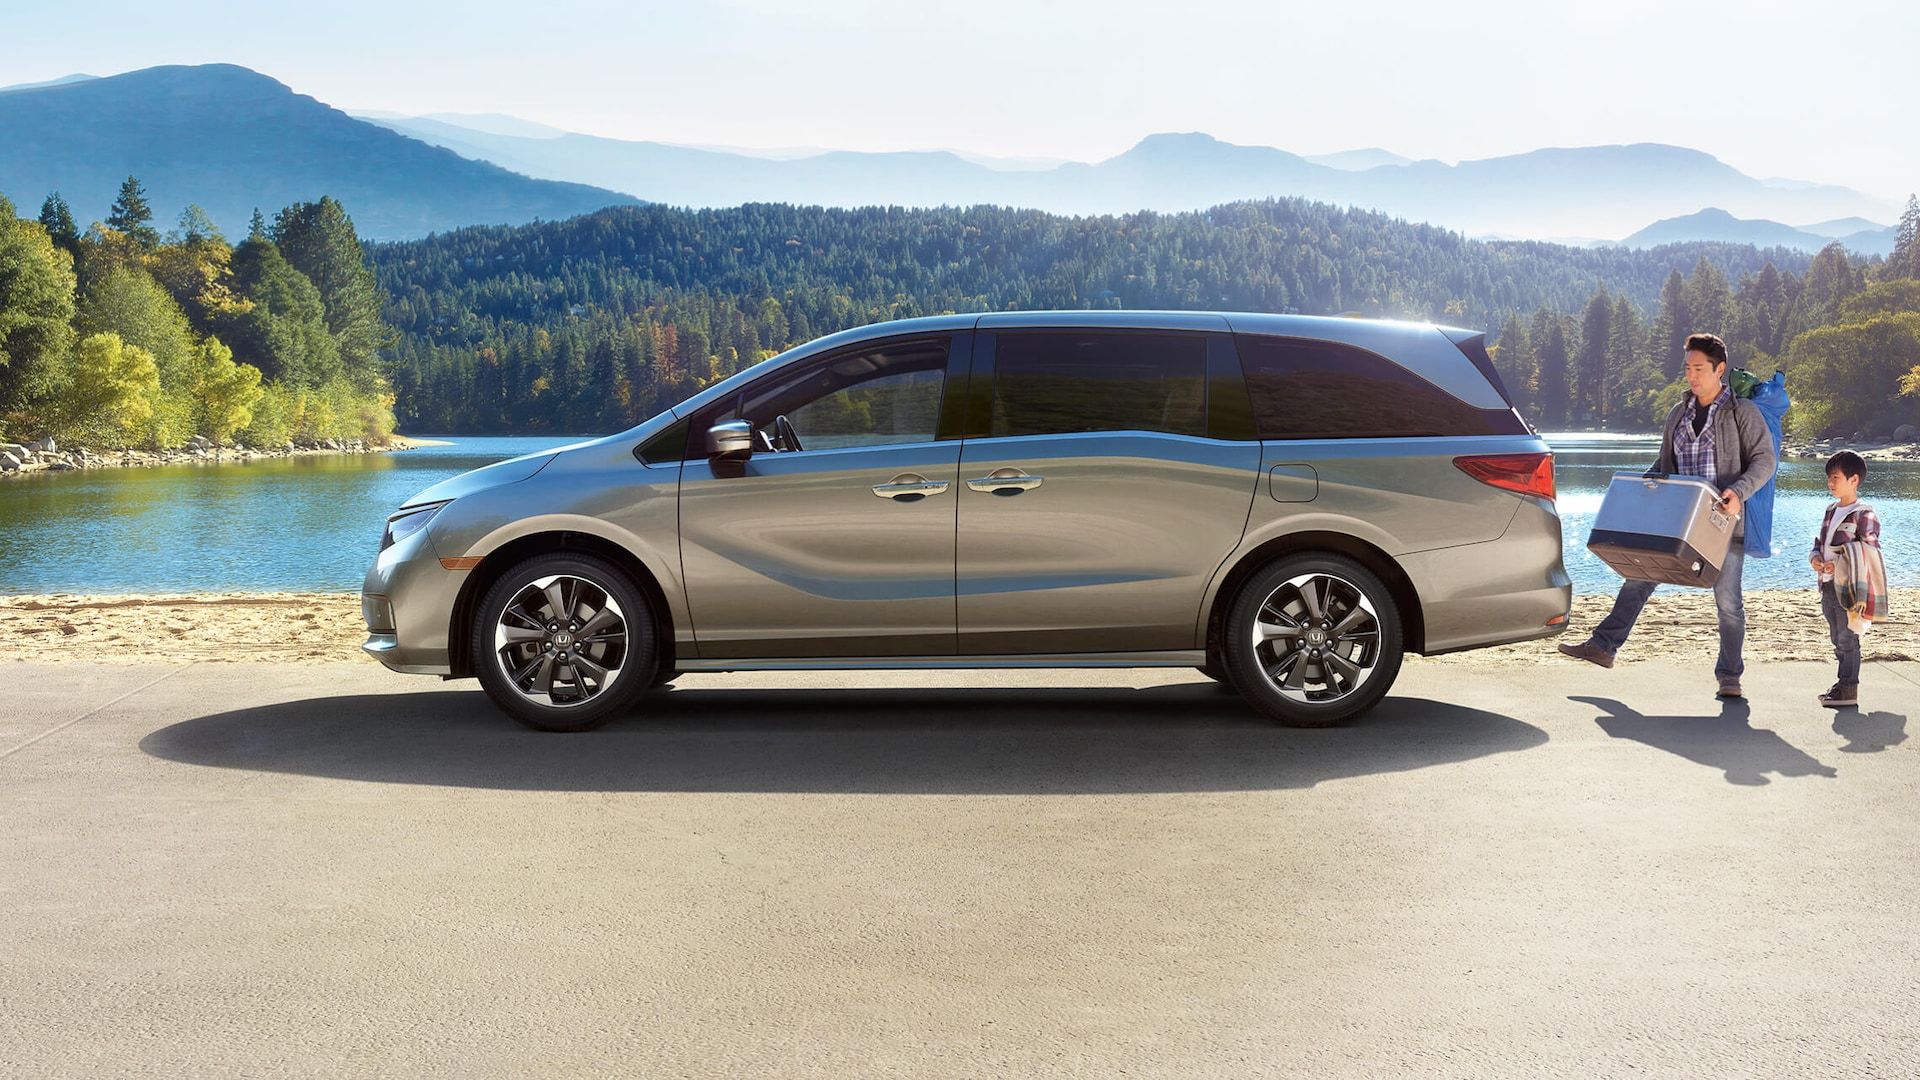 Driver-side profile view of the 2022 Honda Odyssey Touring in Lunar Silver Metallic parked in forest environment.